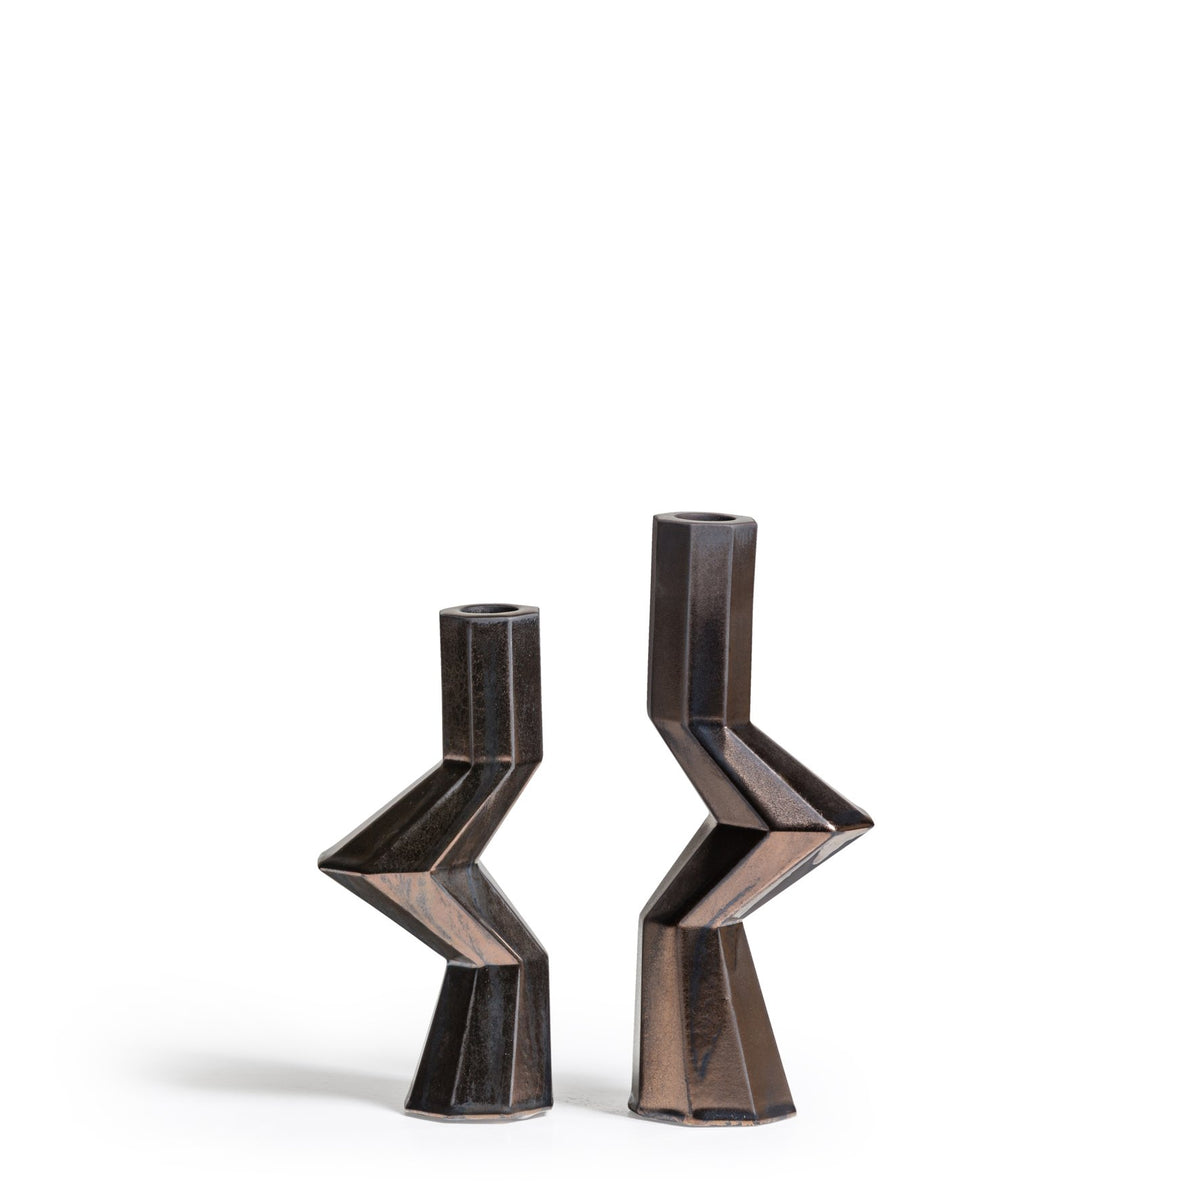 FORTRESS MILITIA CANDLE HOLDERS - BRONZE